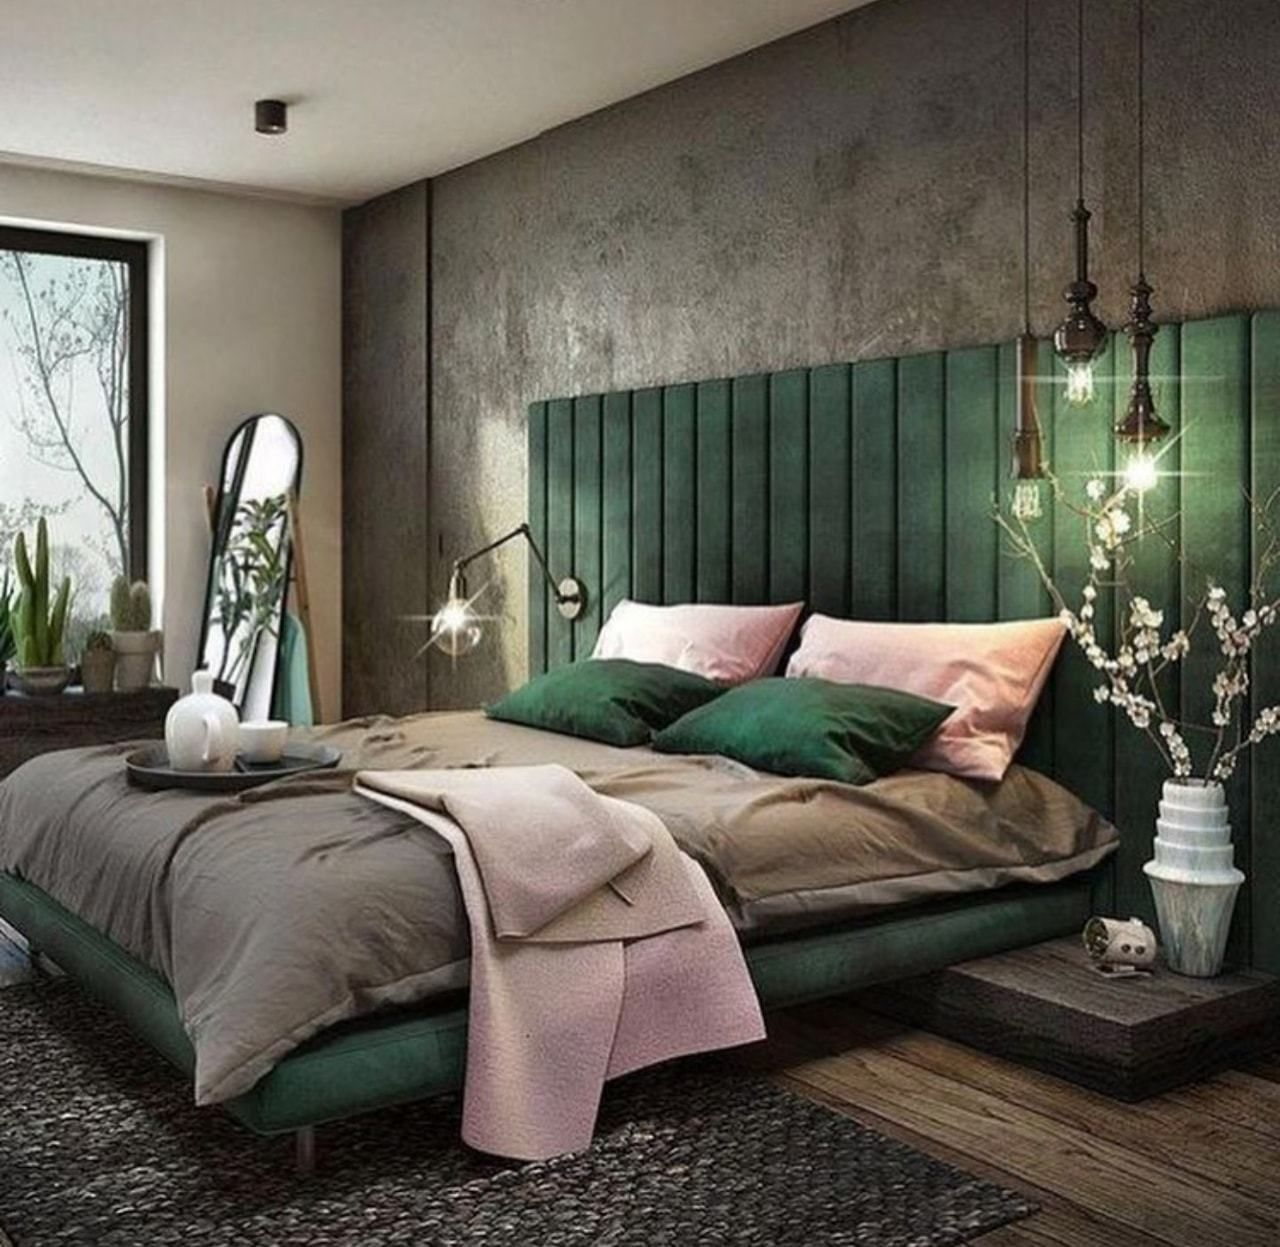 Alte Bettdecken Wohin Bedroom In 2020 | Green Bedroom Design, Bedroom Green ...